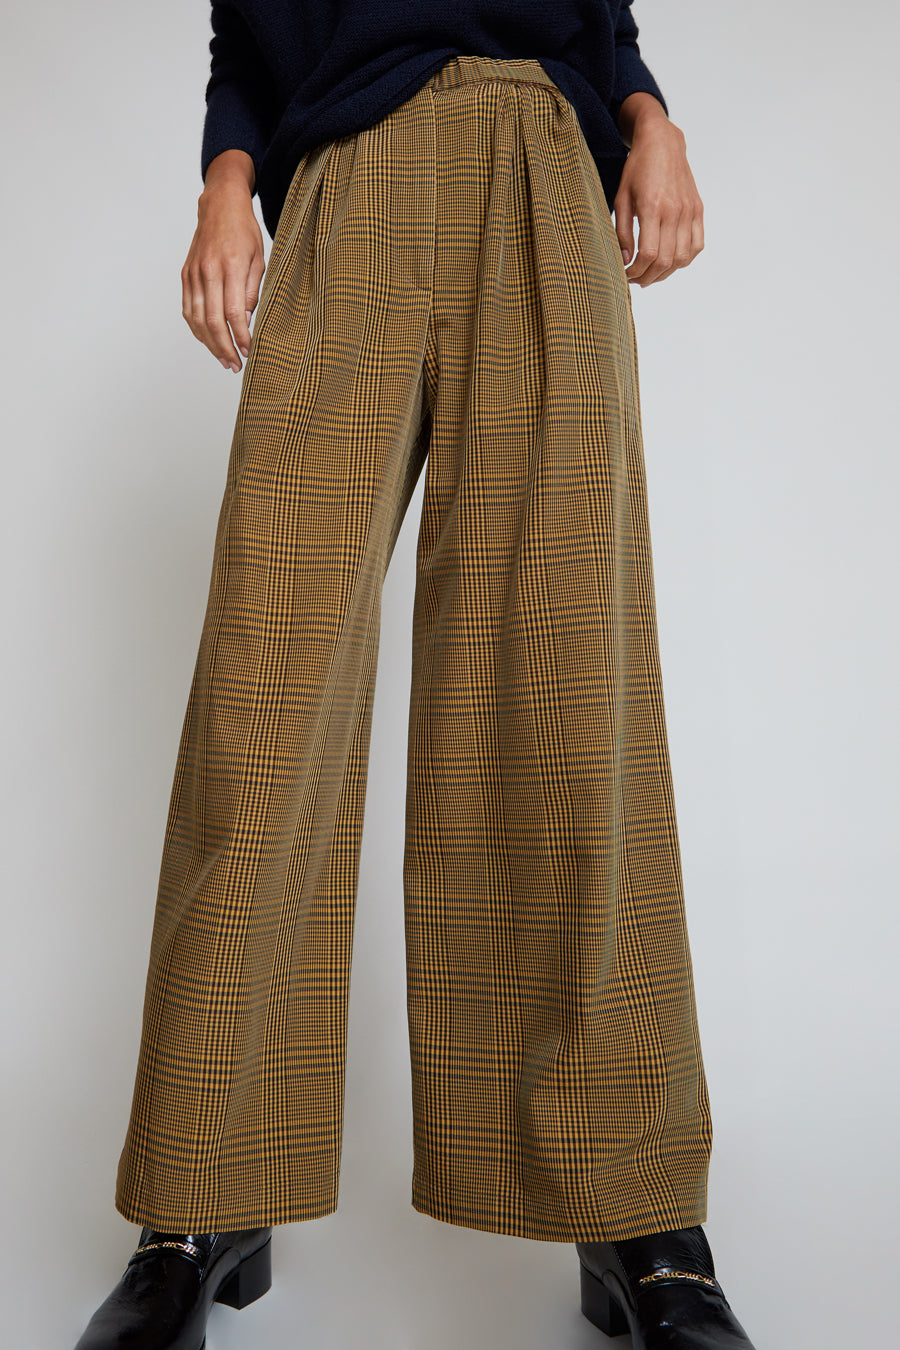 Christian Wijnants Puada Pant in Checks Brown / Camel